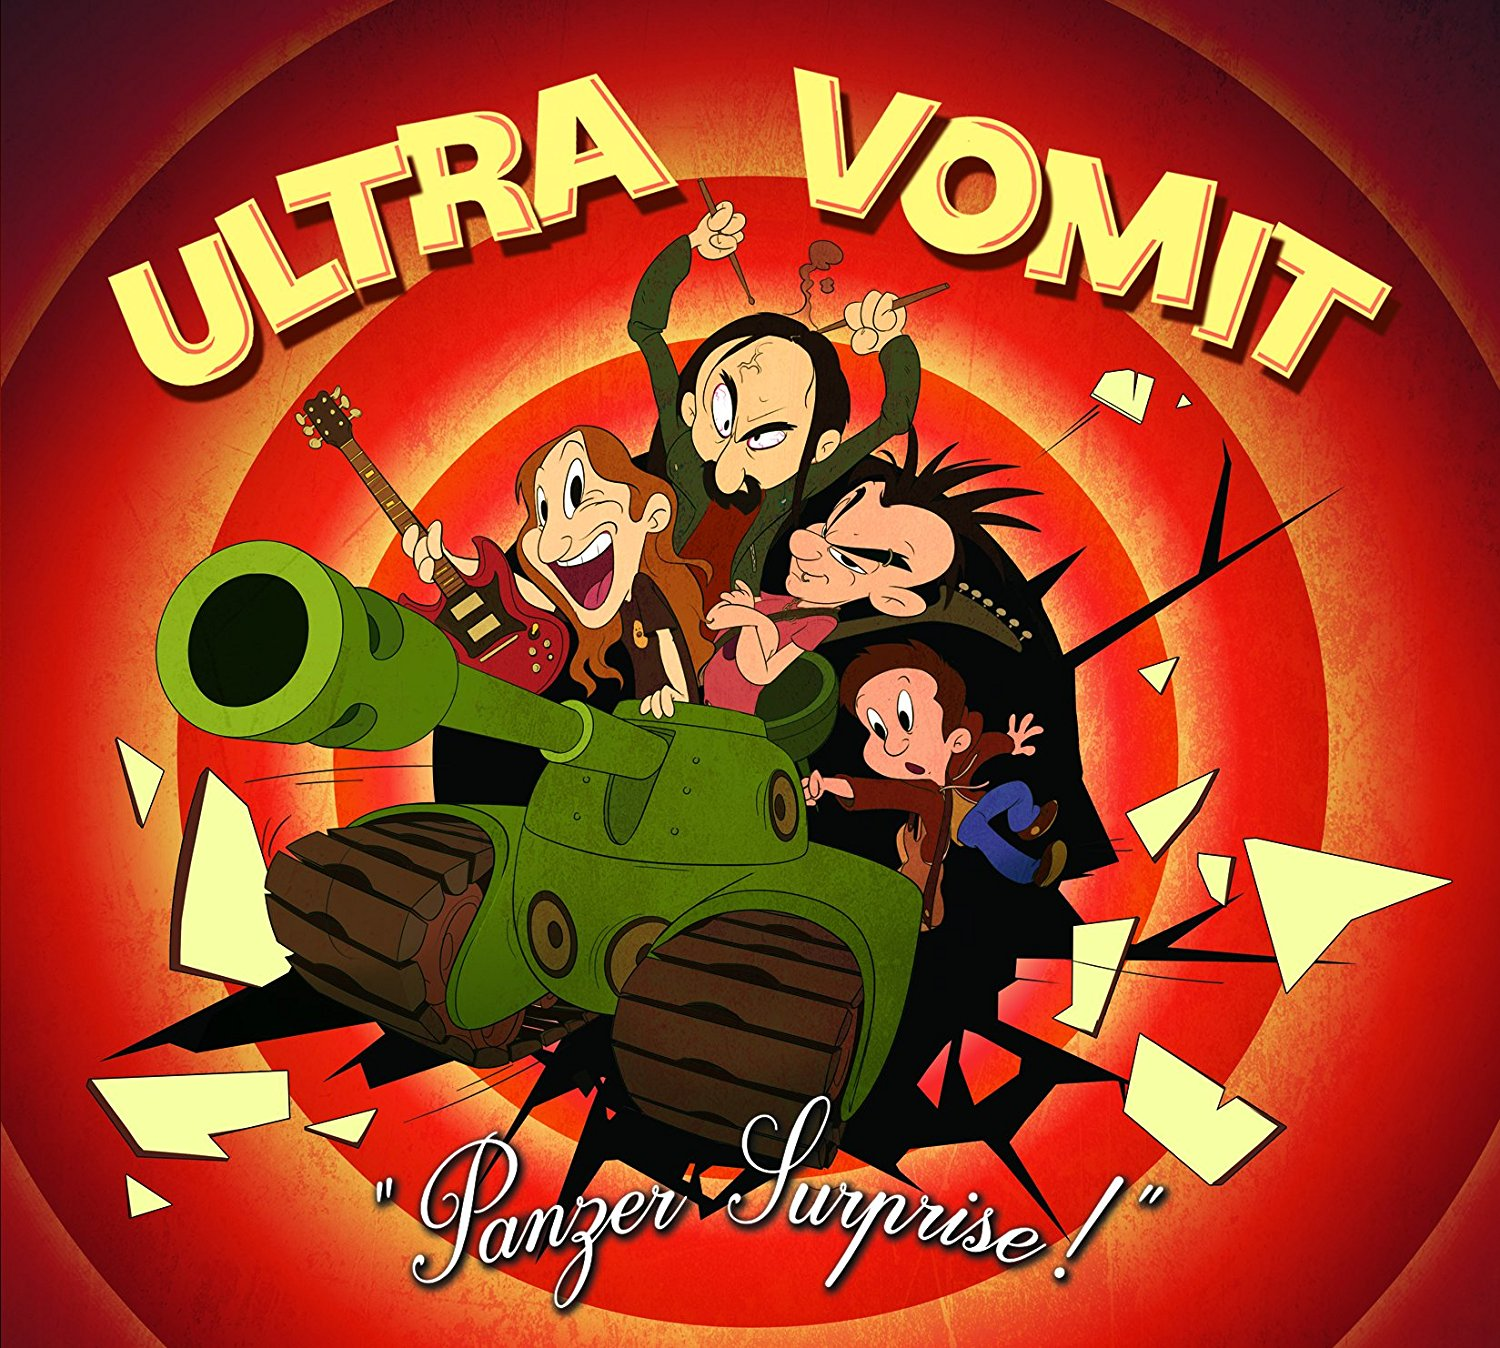 Ultra Vomit : Panzer Surprise